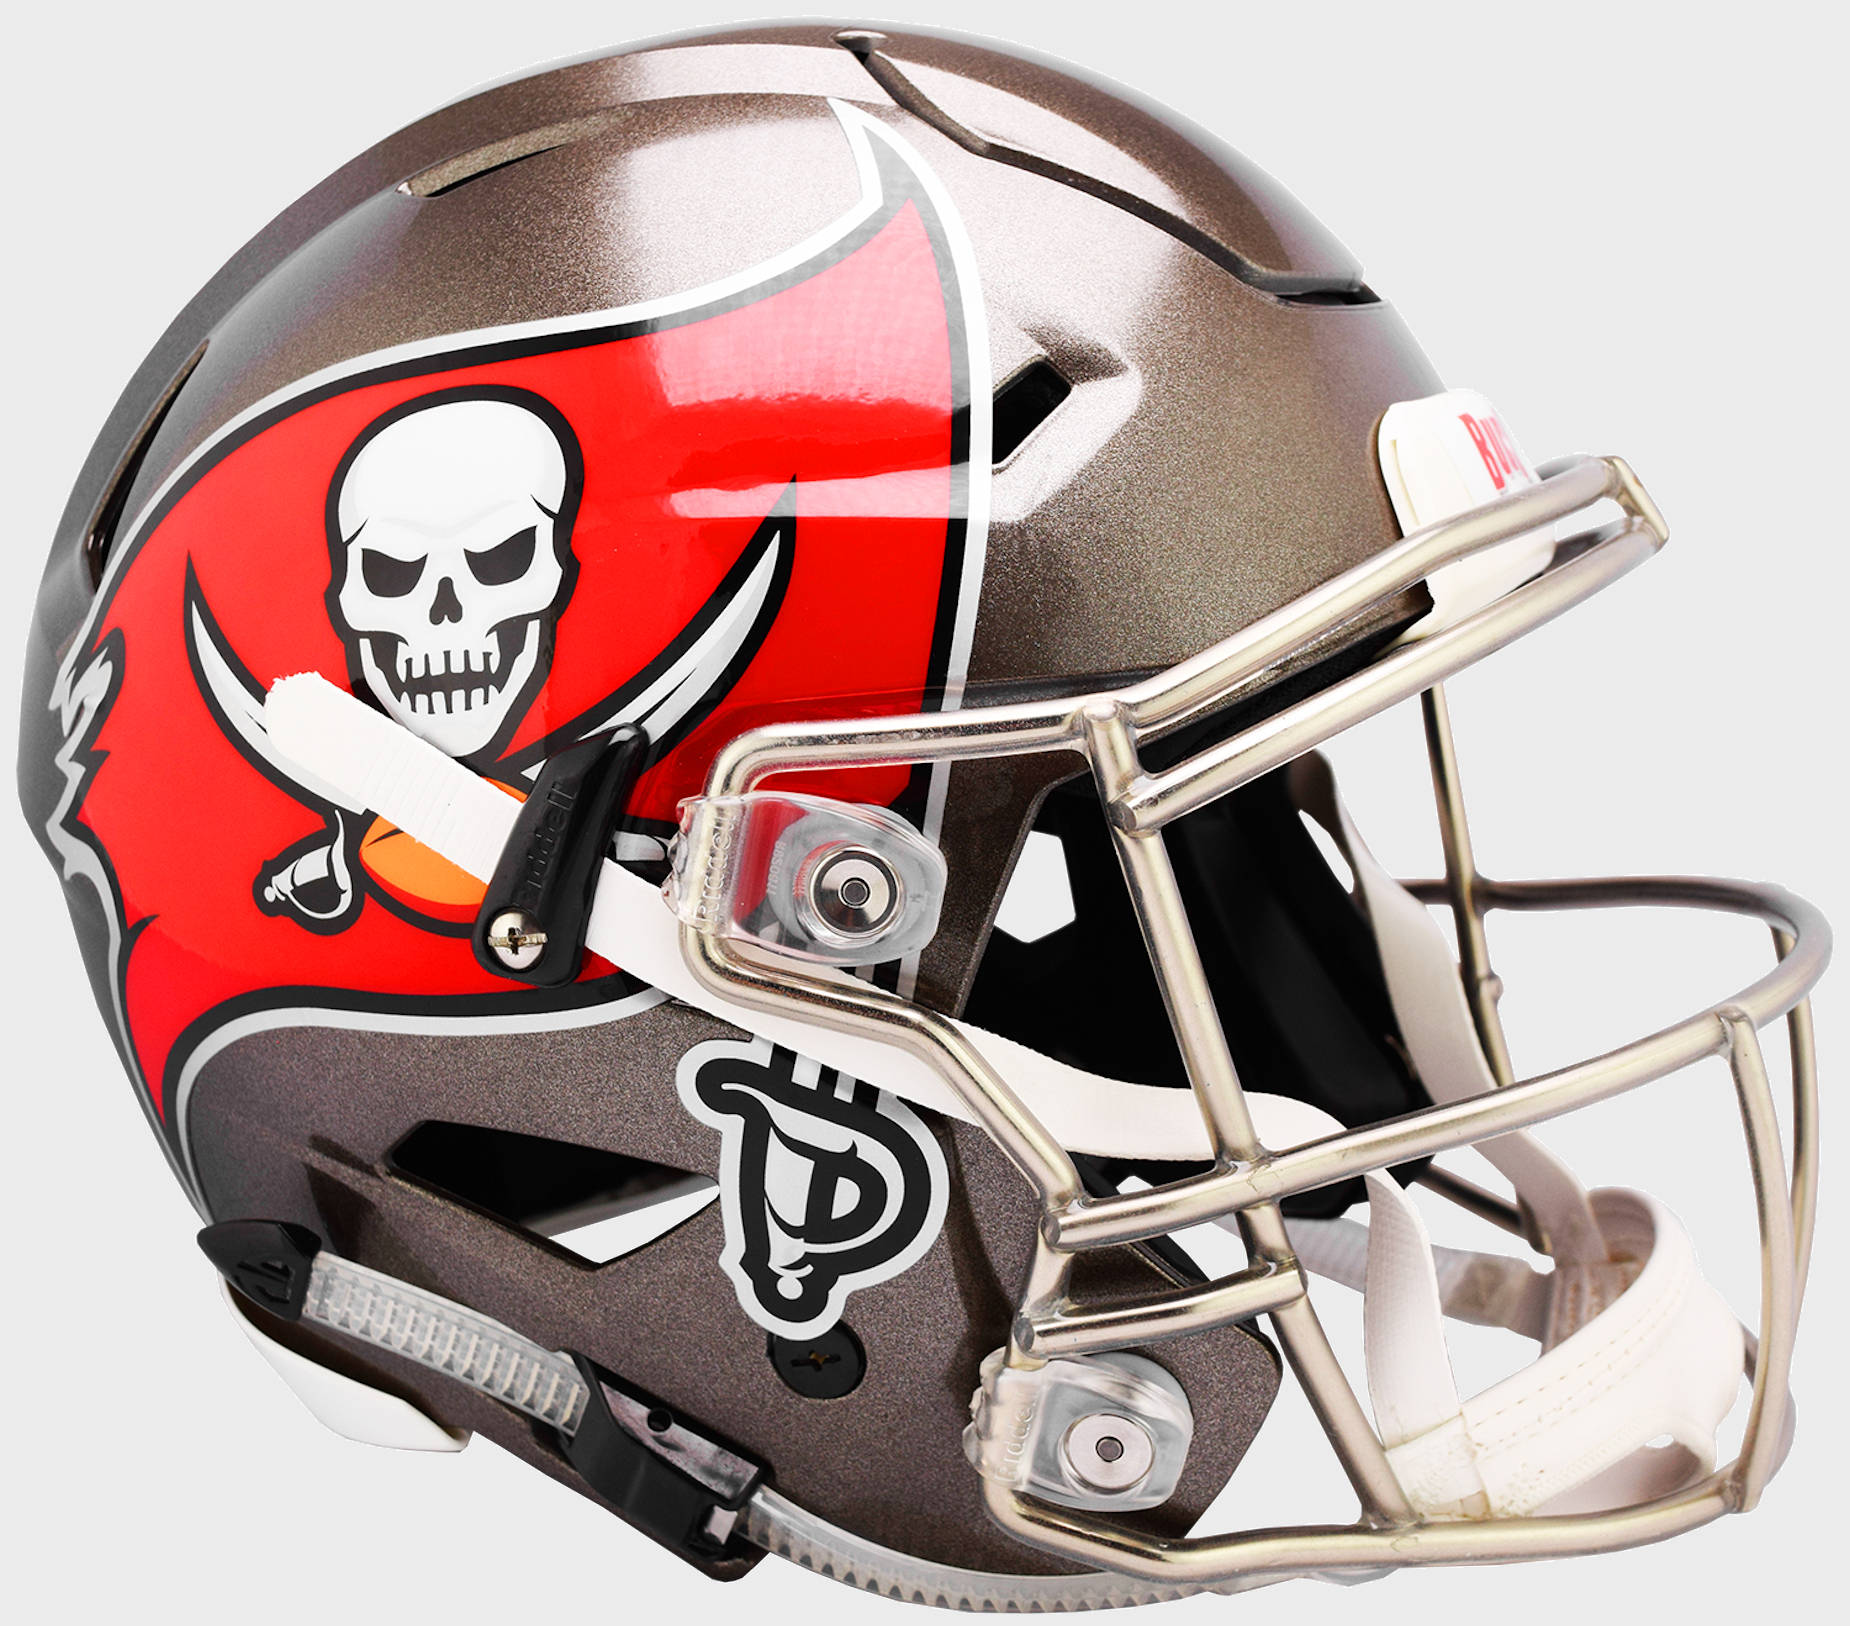 Tampa Bay Buccaneers SpeedFlex Football Helmet